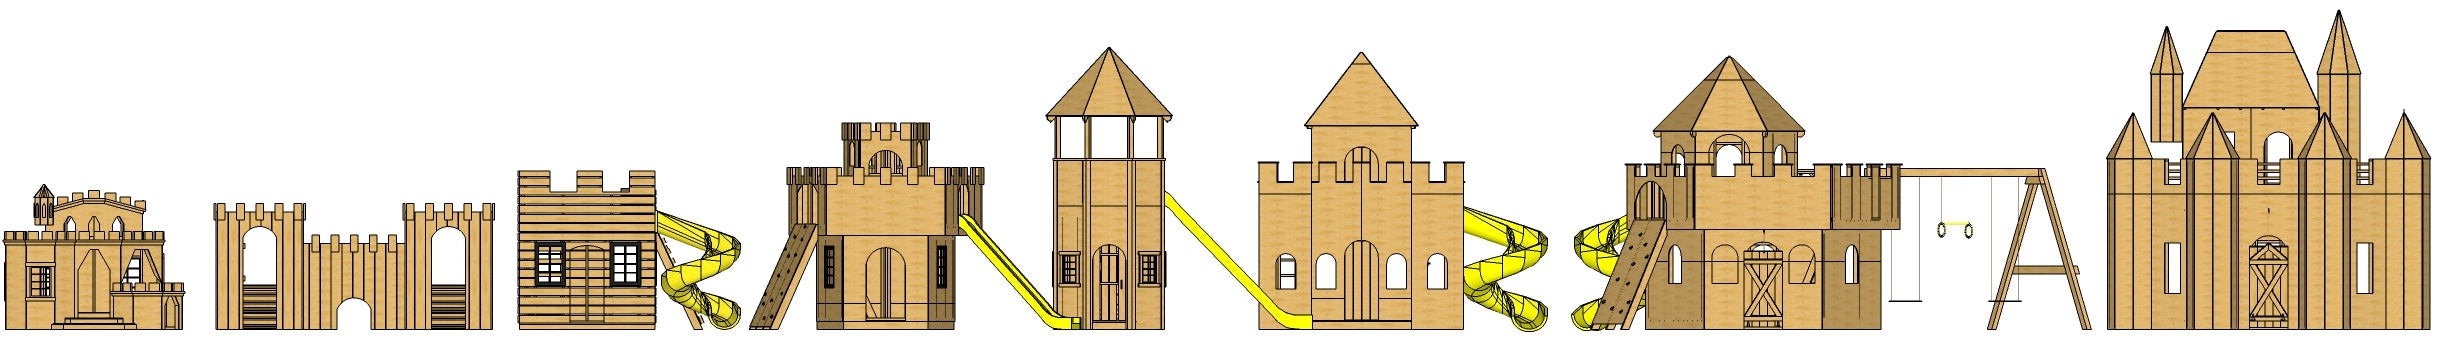 Six outdoor, wooden castle playhouse plans